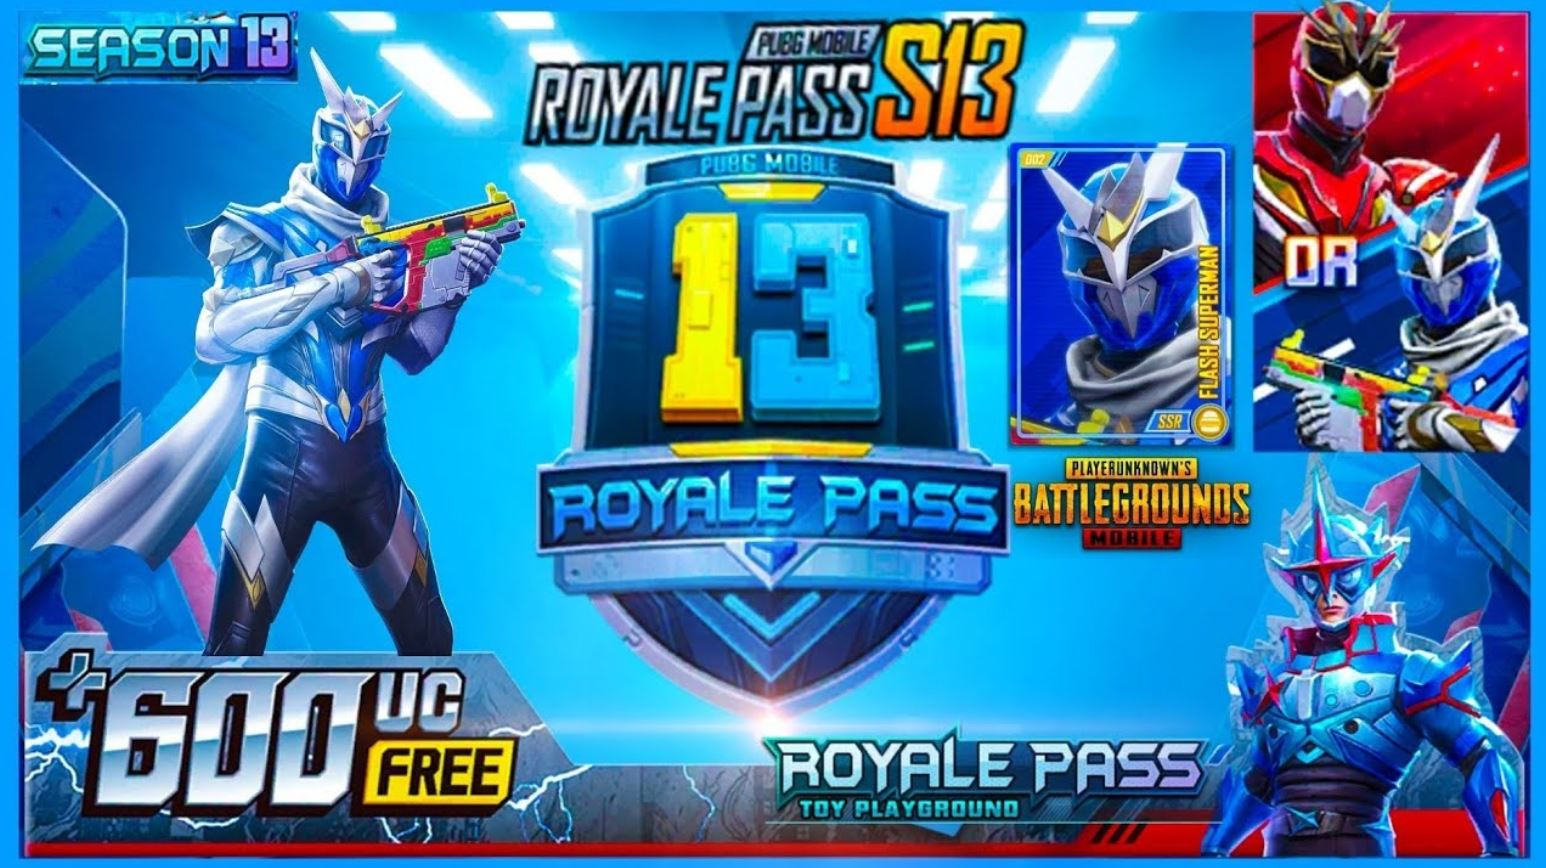 Get Free Pubg Mobile Season 13 Royal Pass !